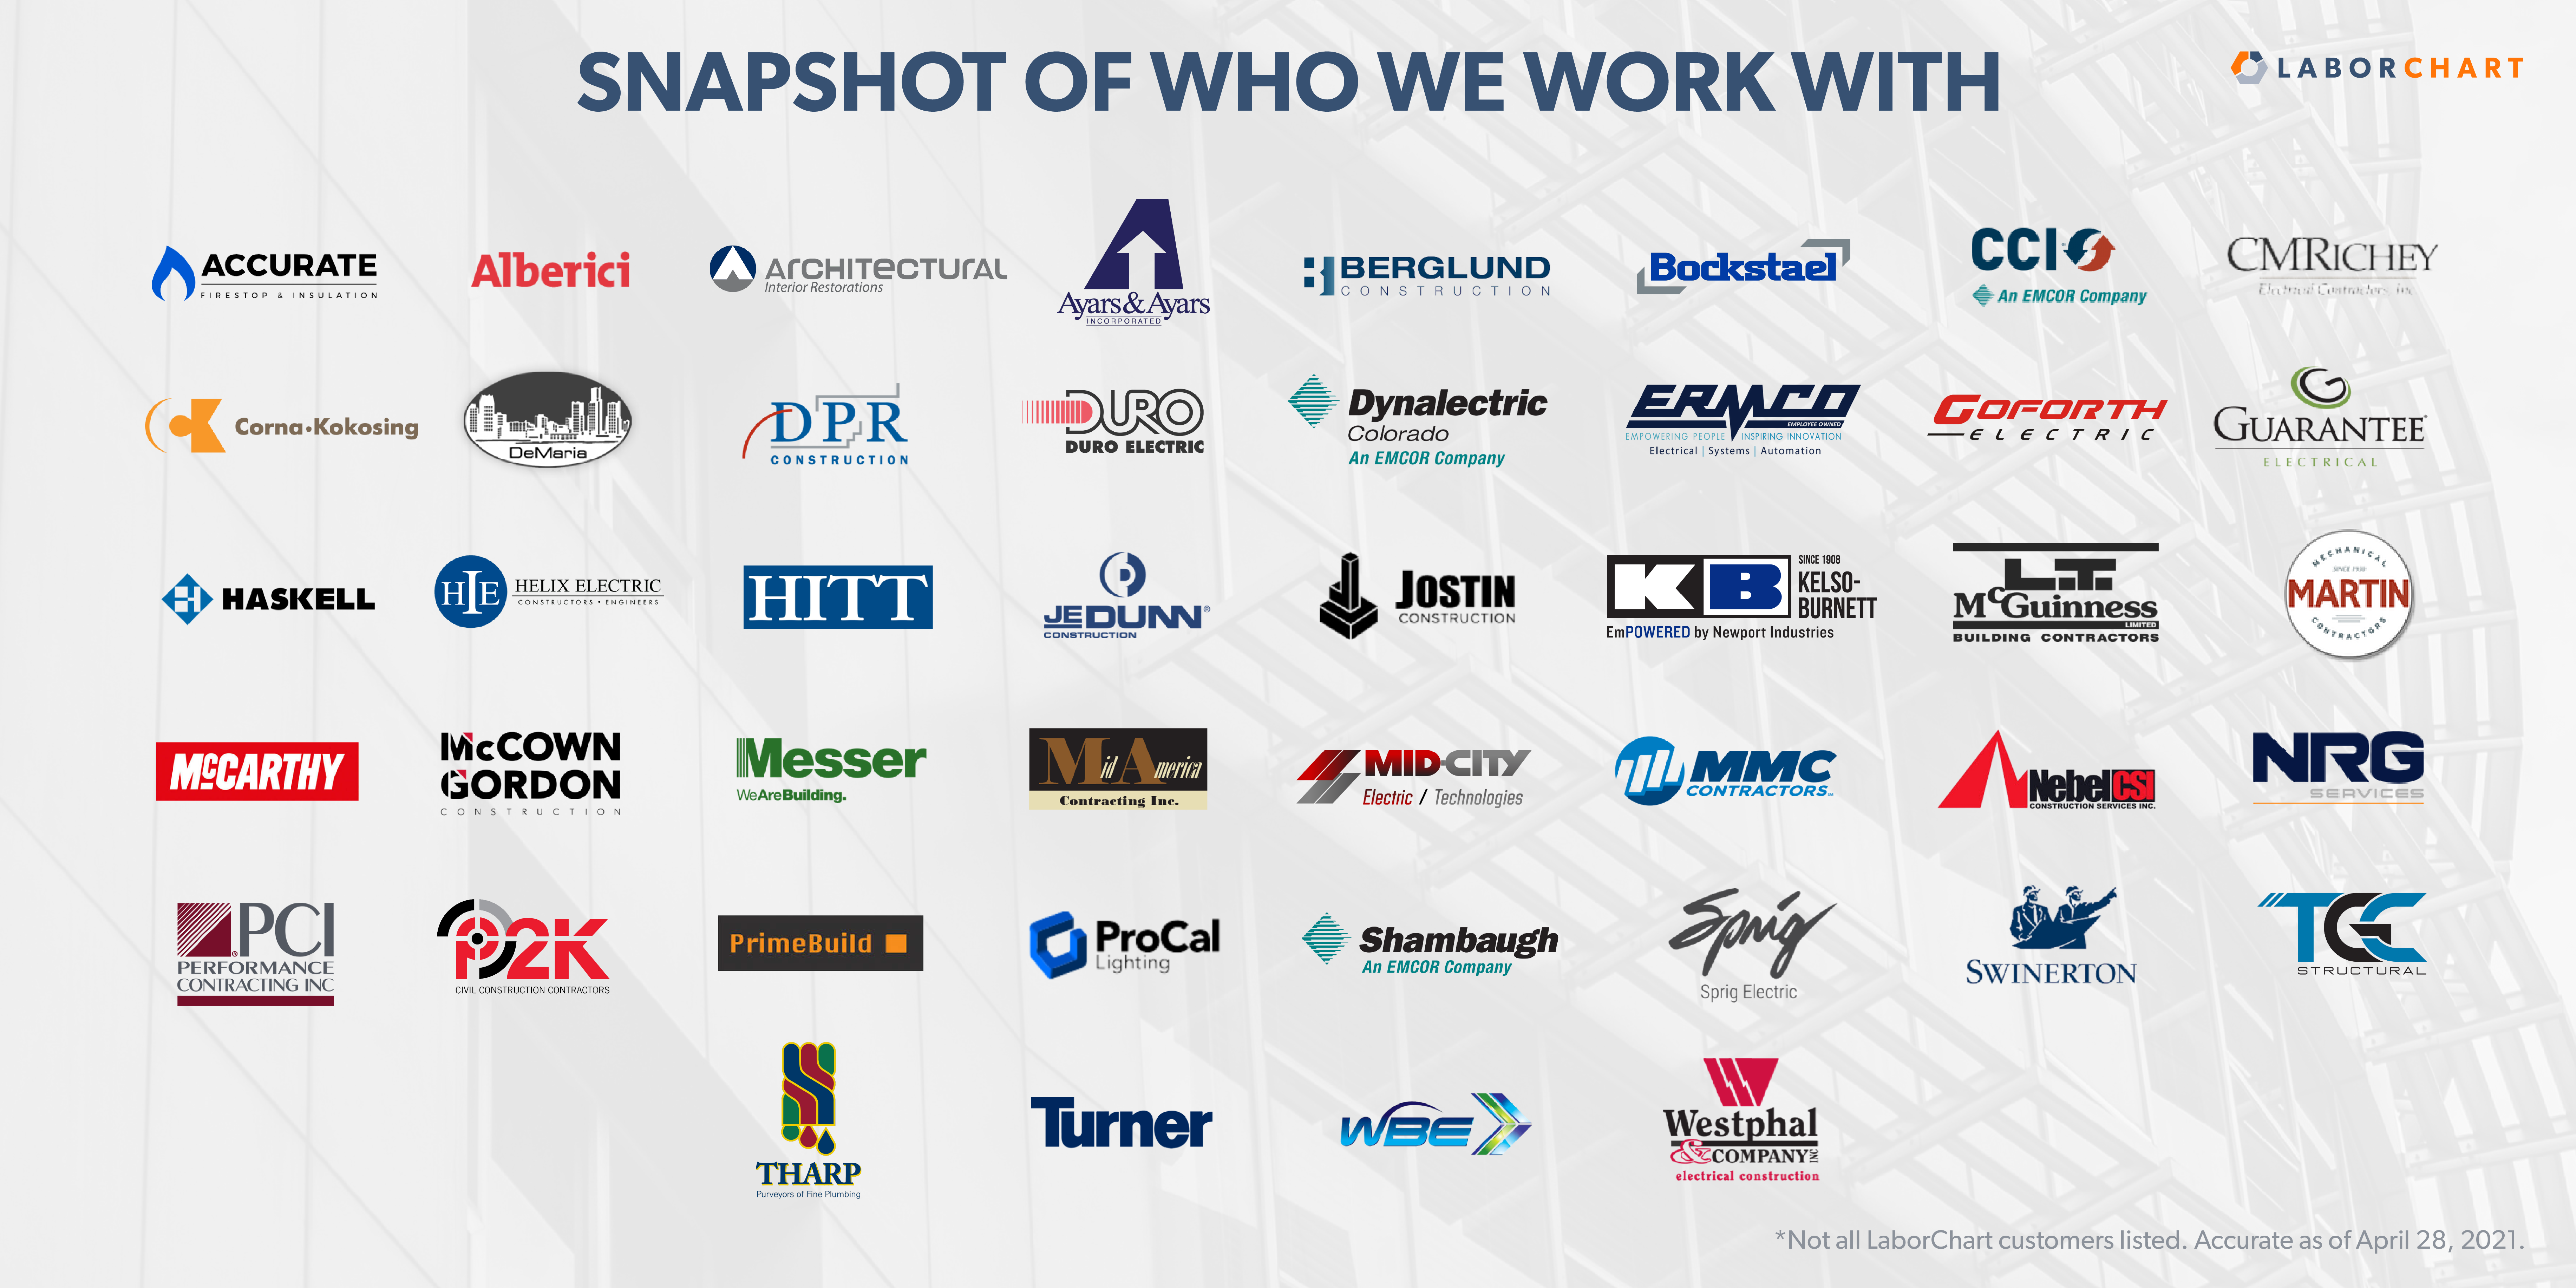 General and specialty contractor logos that are LaborChart customers.